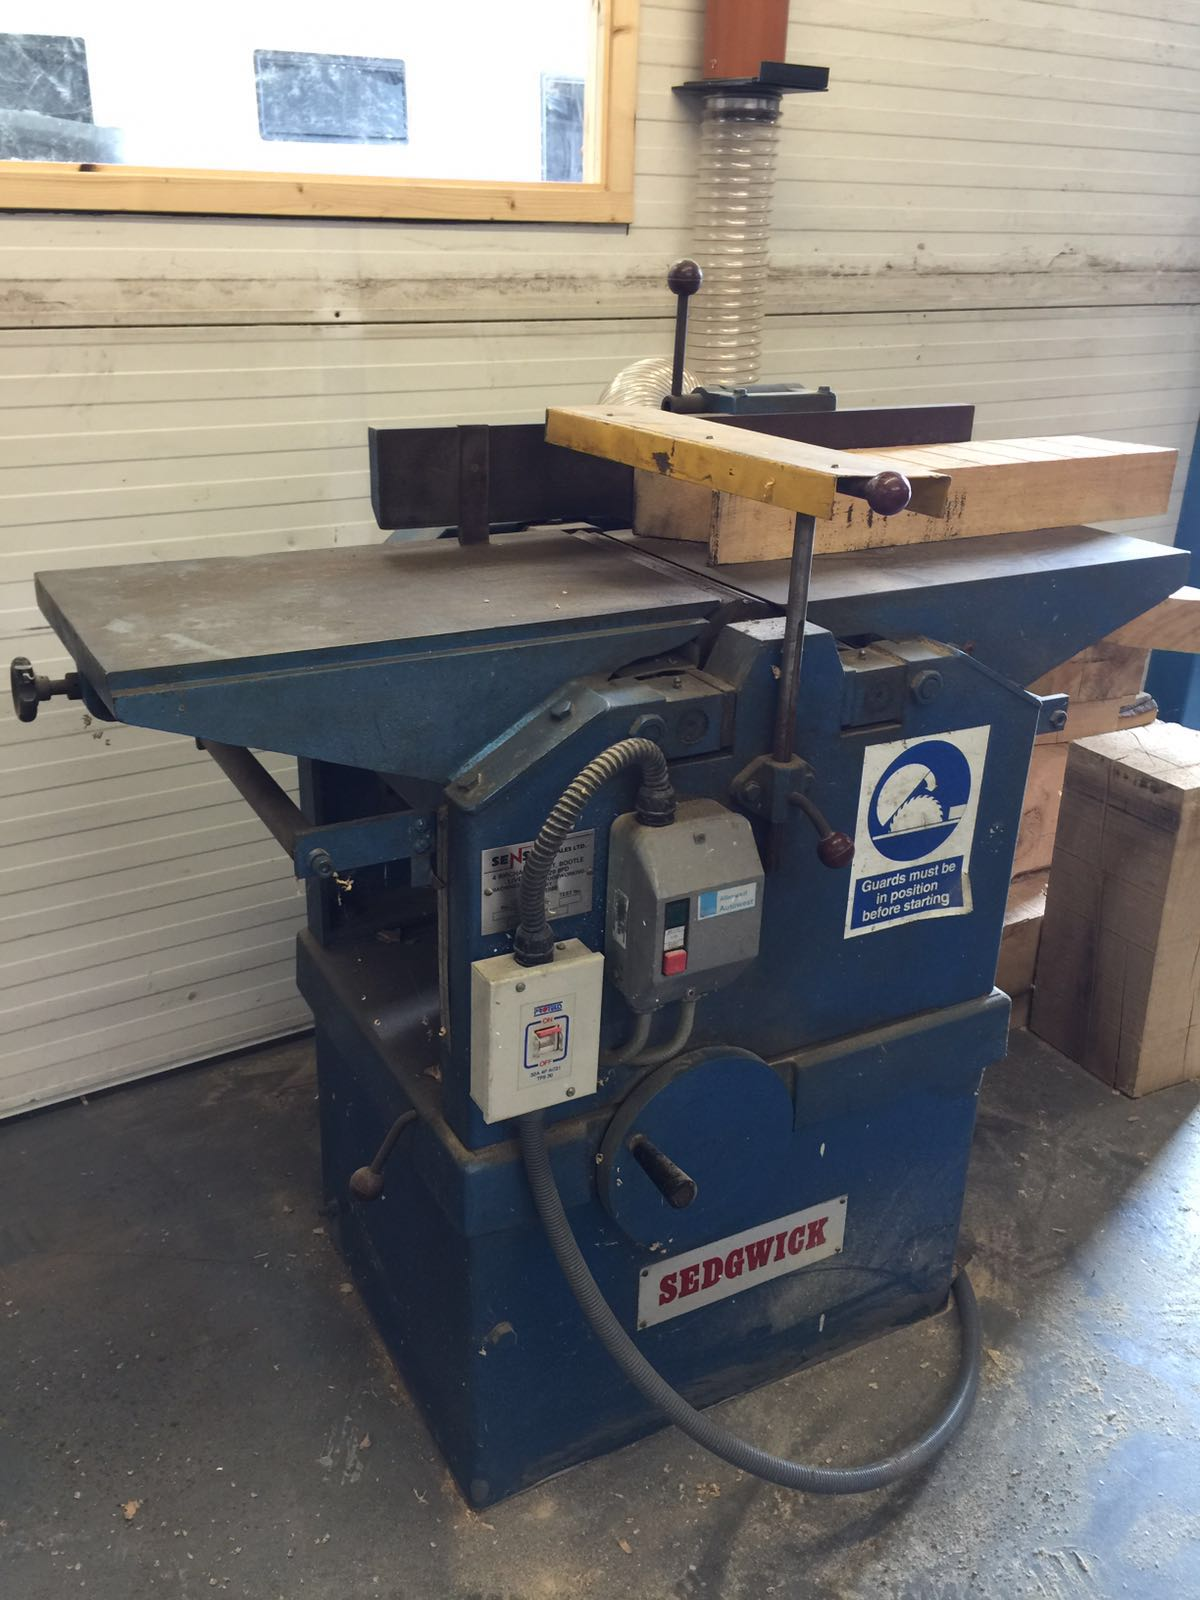 Nr 2005 sedgwick bench planer thicknesser in working order 300mmm wide blade 3 phase 415v f Bench planer